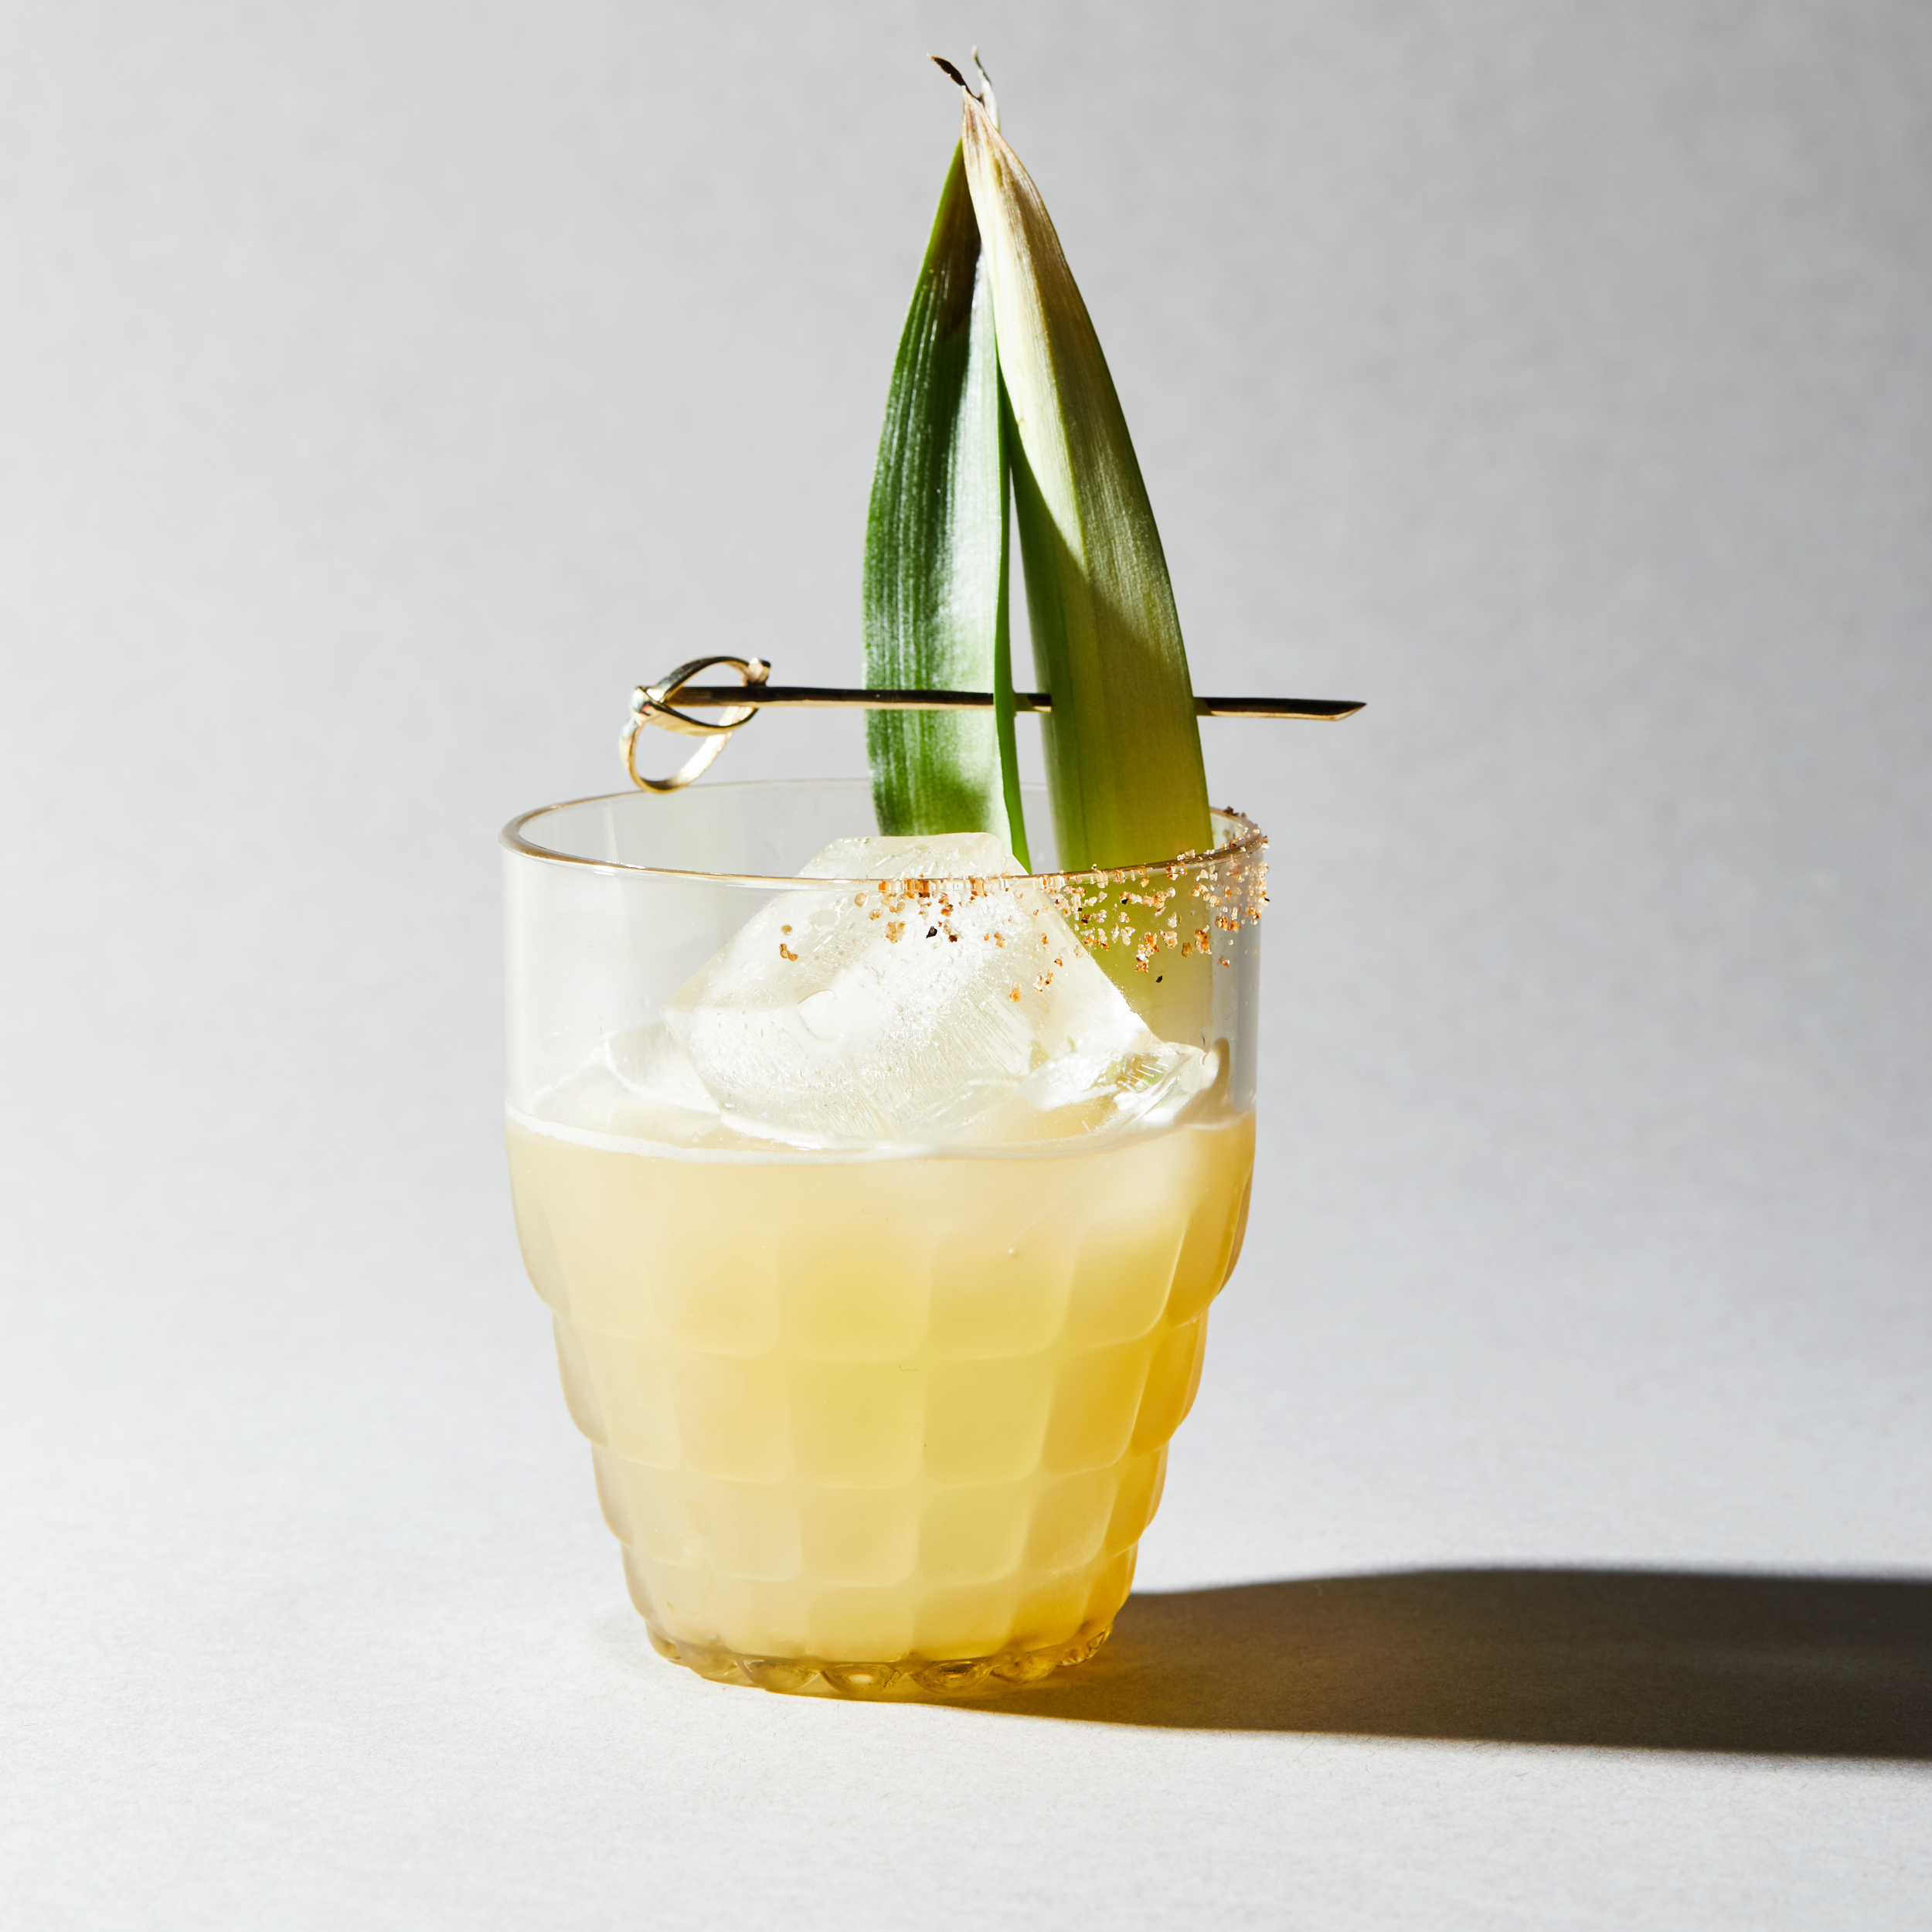 09_Mixers_Cocktails_Pineapple_Margarita_002.jpg